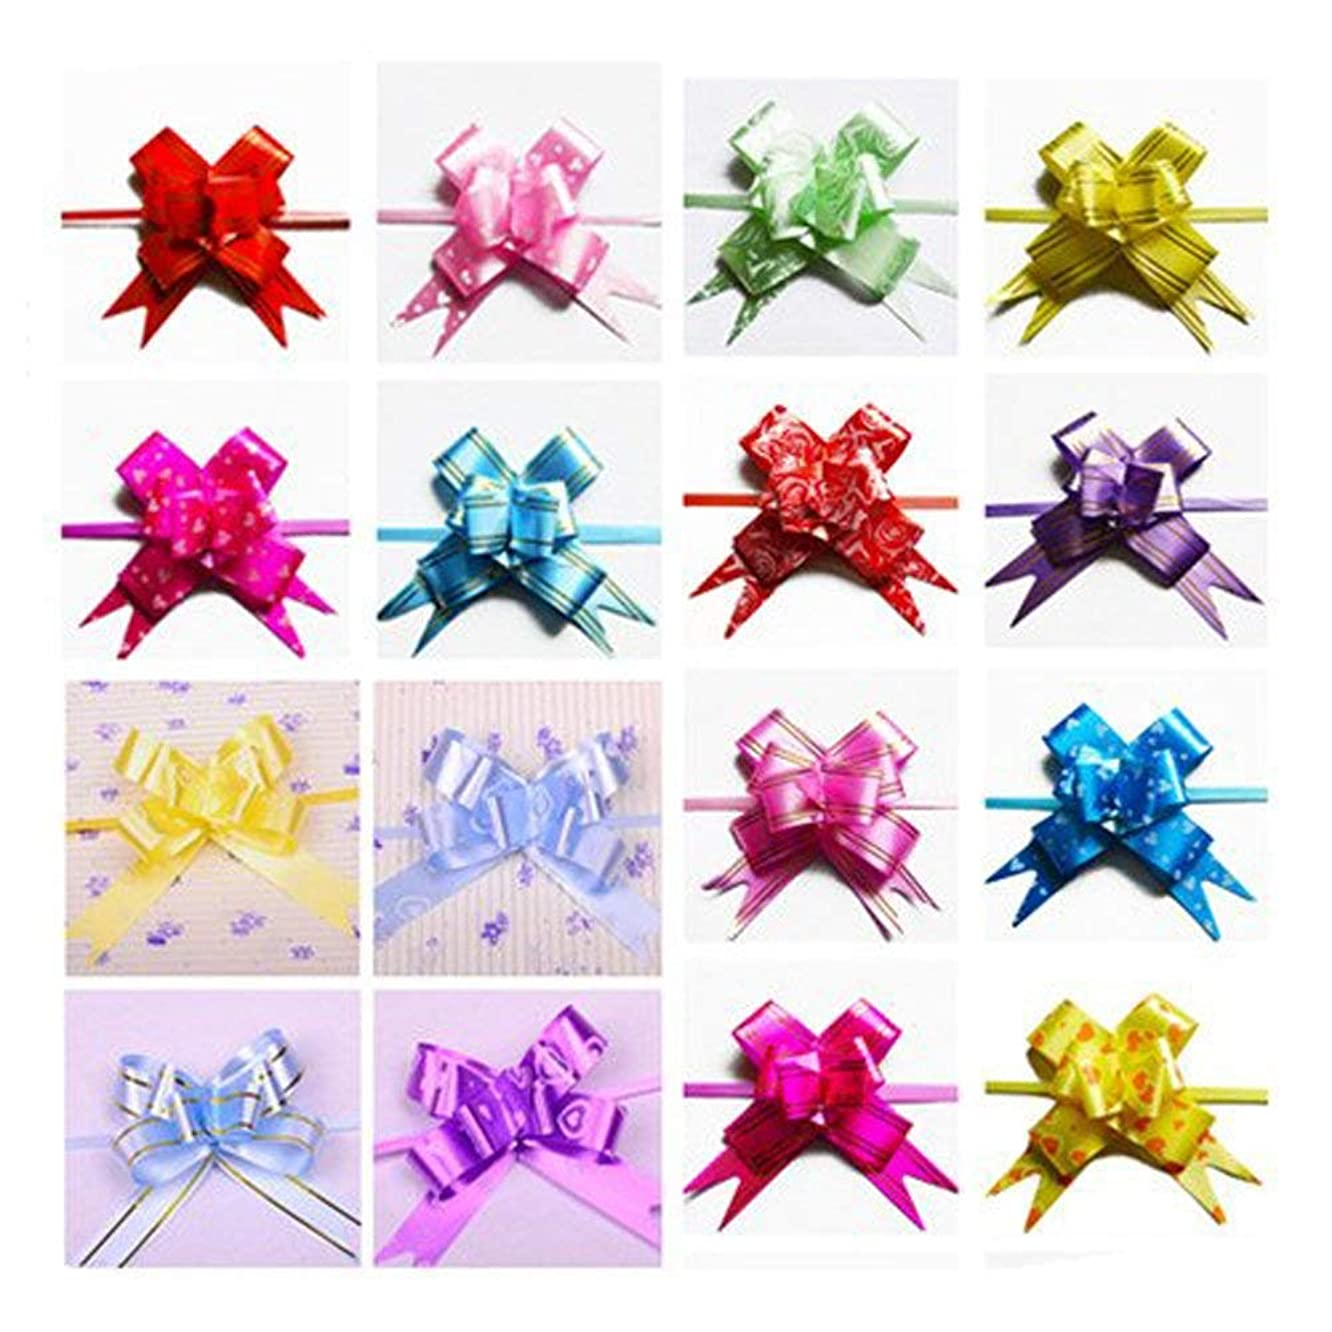 Ewandastore Christmas Gift Pull Bows-300pcs Assorted Colors Gift Wrapping Christmas Wedding Decoration Pull Bows (Length 14.17